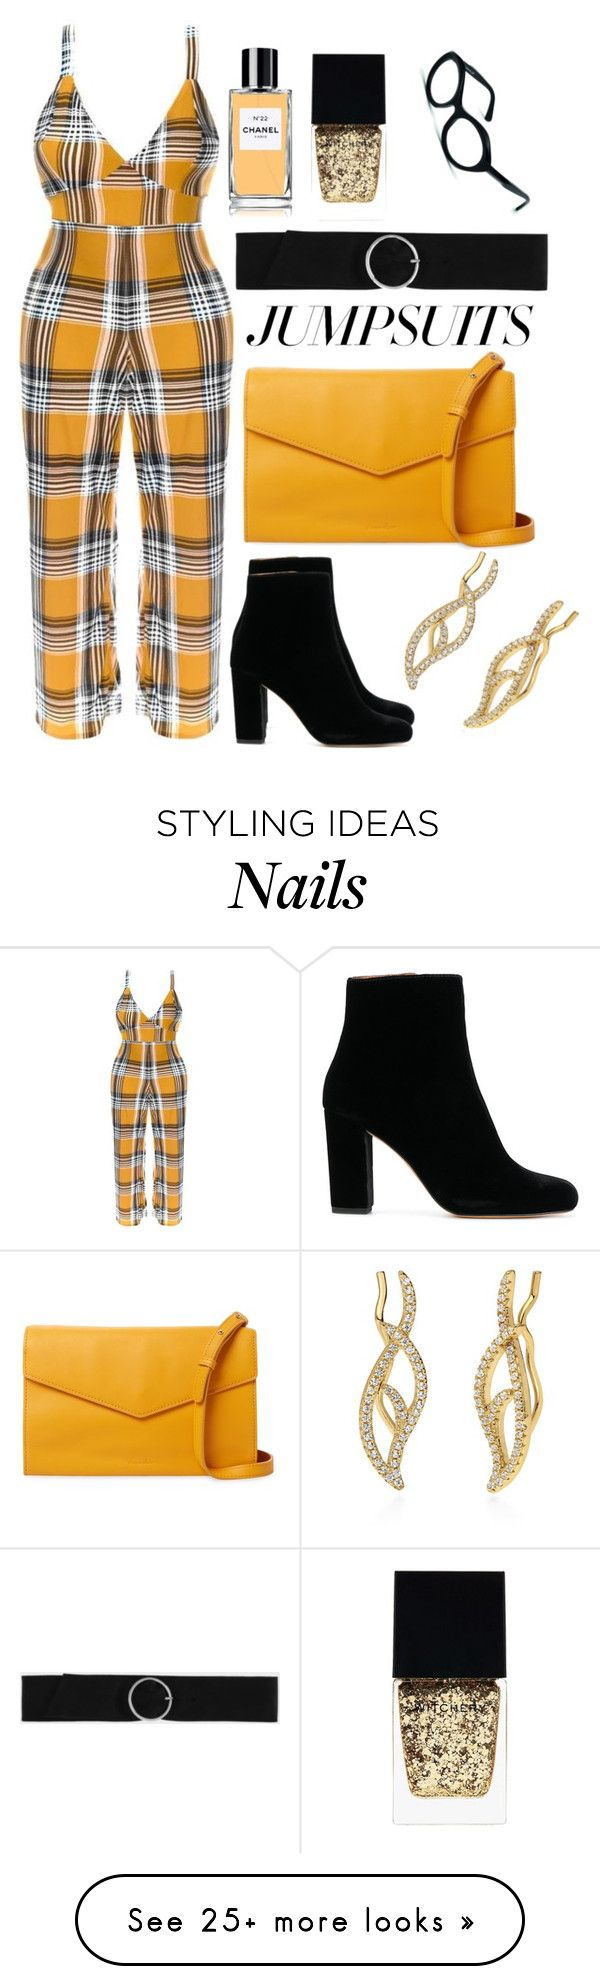 """Plaid jumpsuit"" by dakotabydesign on Polyvore featuring IRO, Steven Alan, BERRICLE, CHARLES & KEITH, Chanel and Witchery"